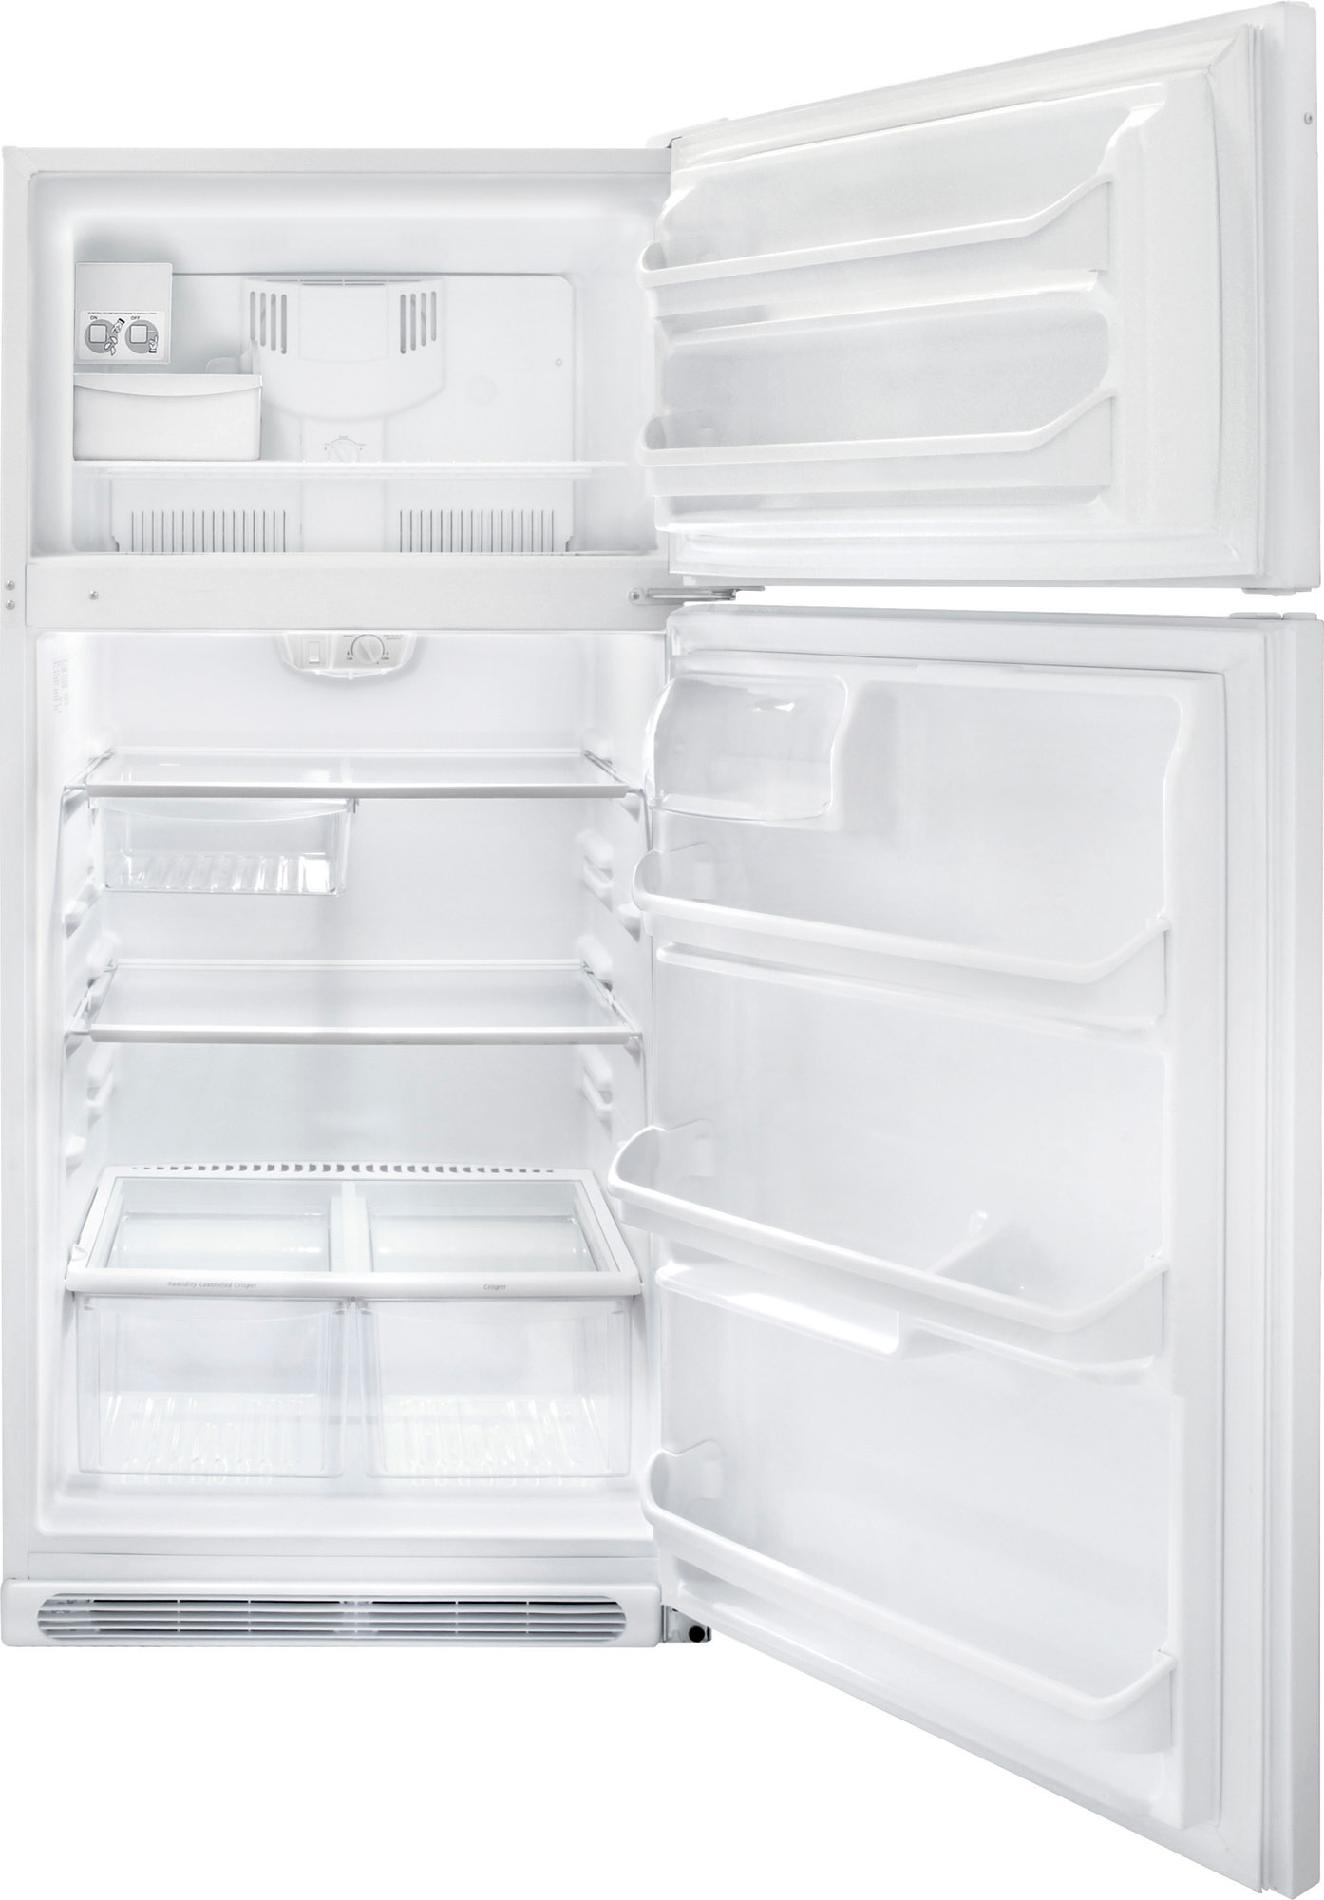 Frigidaire 18.2 cu. ft. Top Freezer Refrigerator w/Ice Maker